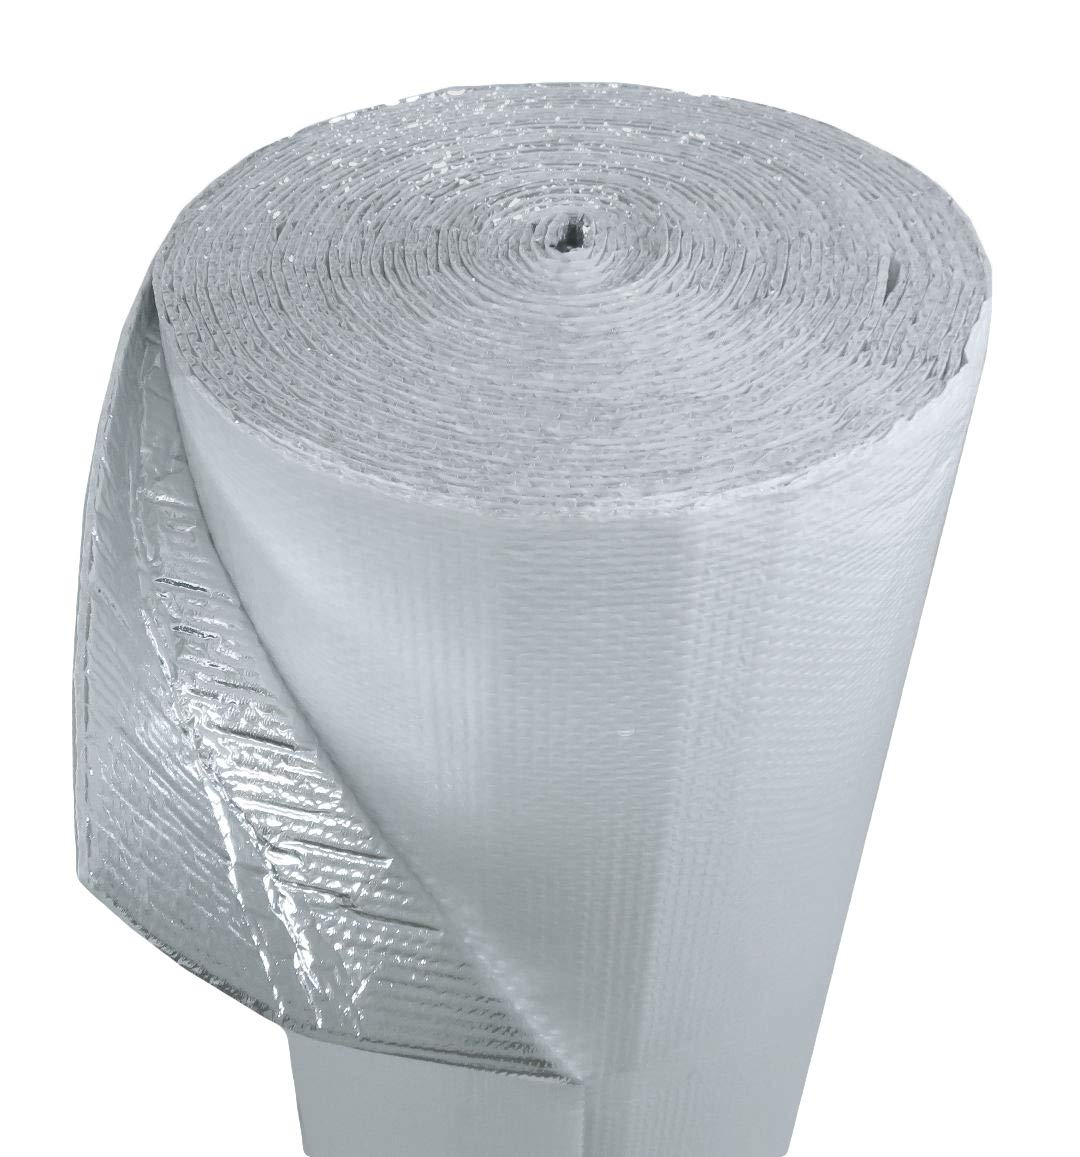 US Energy Products 48'' x 75' White Double Bubble Reflective Foil Insulation Thermal Barrier R8 by MWS